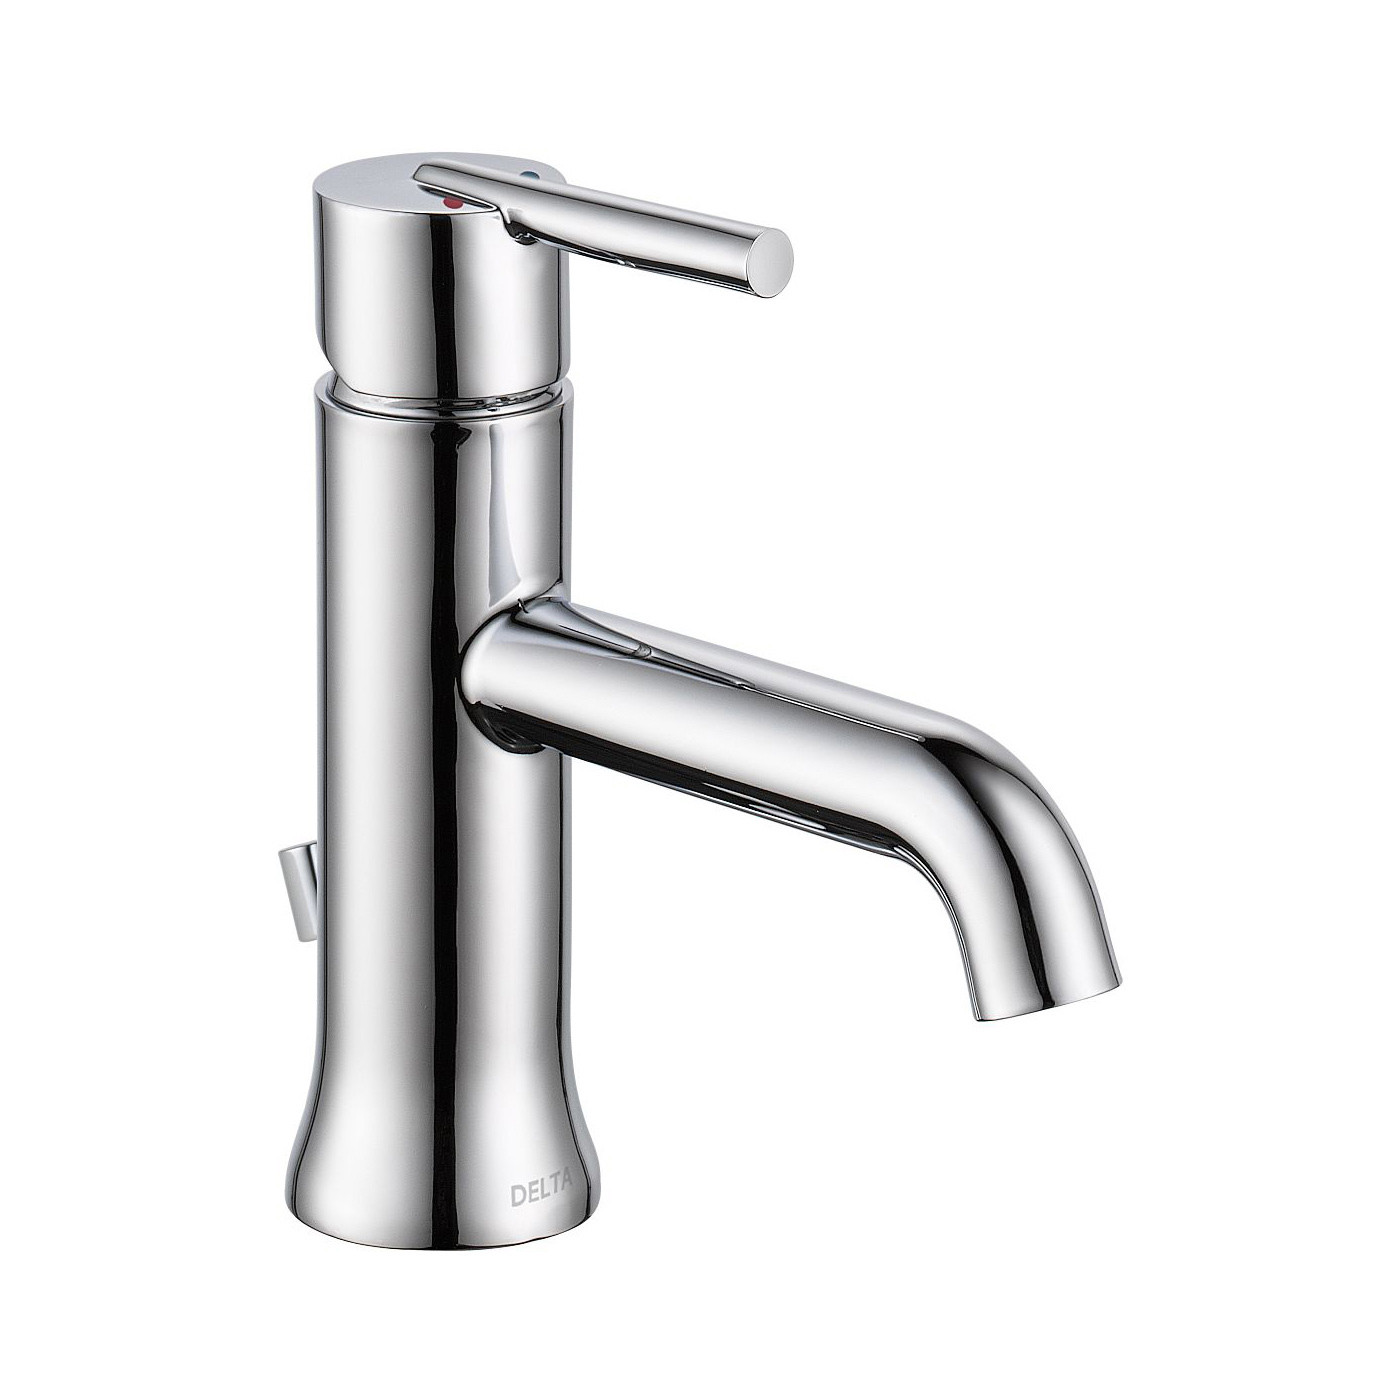 mpu lahara handle com amazon hole delta s centerset dp single kpnscl faucet chrome bathroom dst